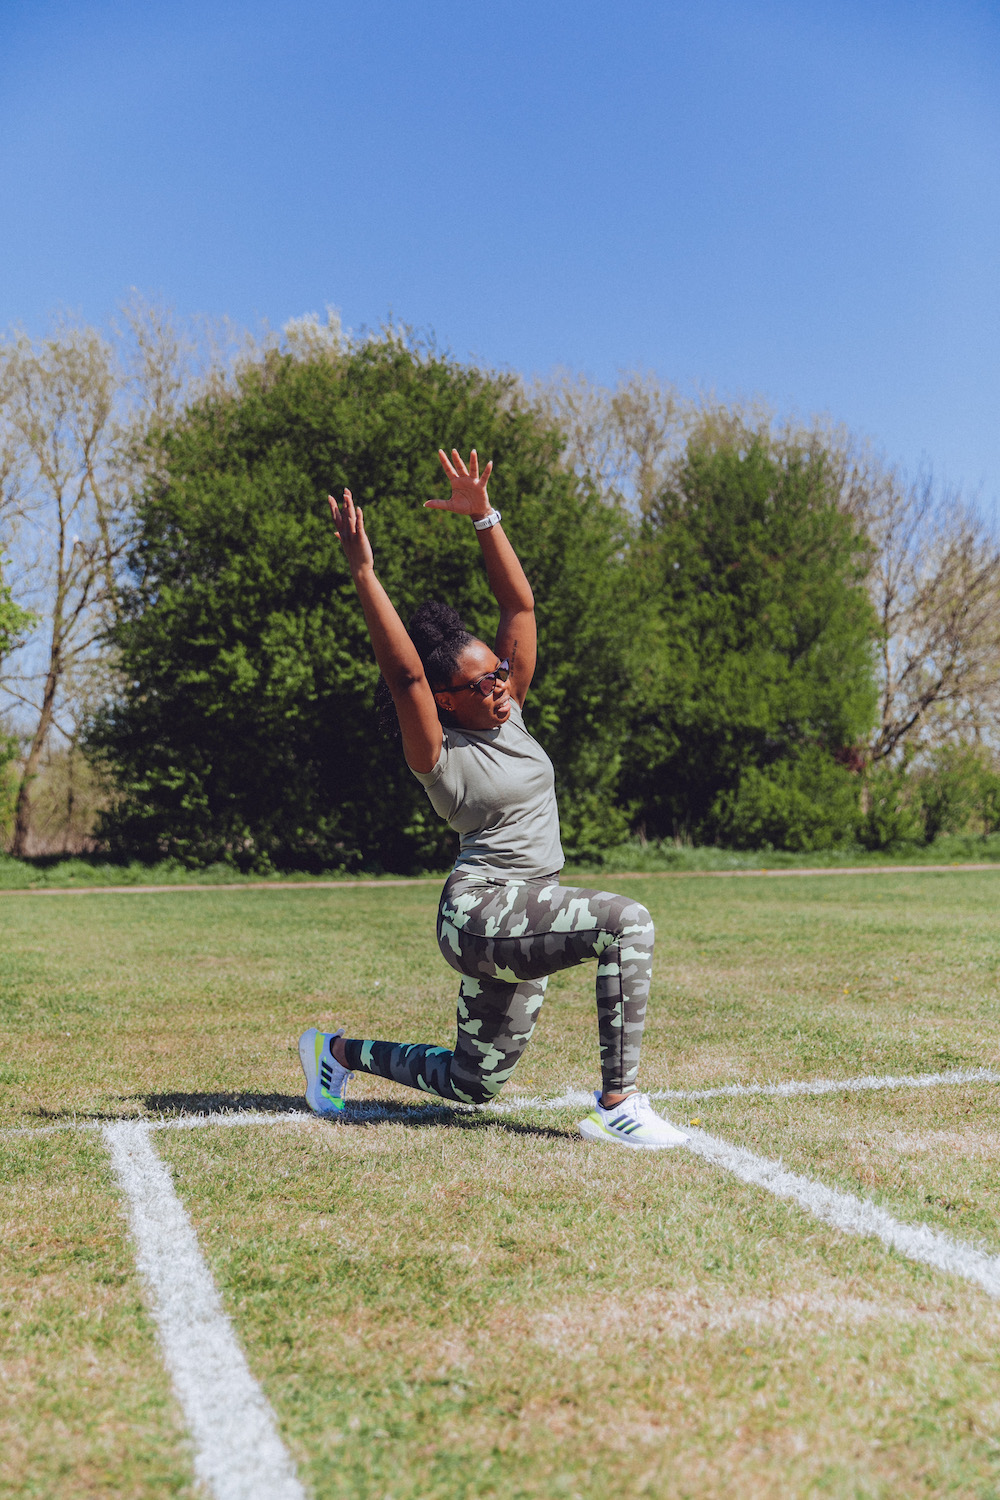 running warm up lunge with side reach in lululemon running leggings - Get Strong To Avoid Running Injuries